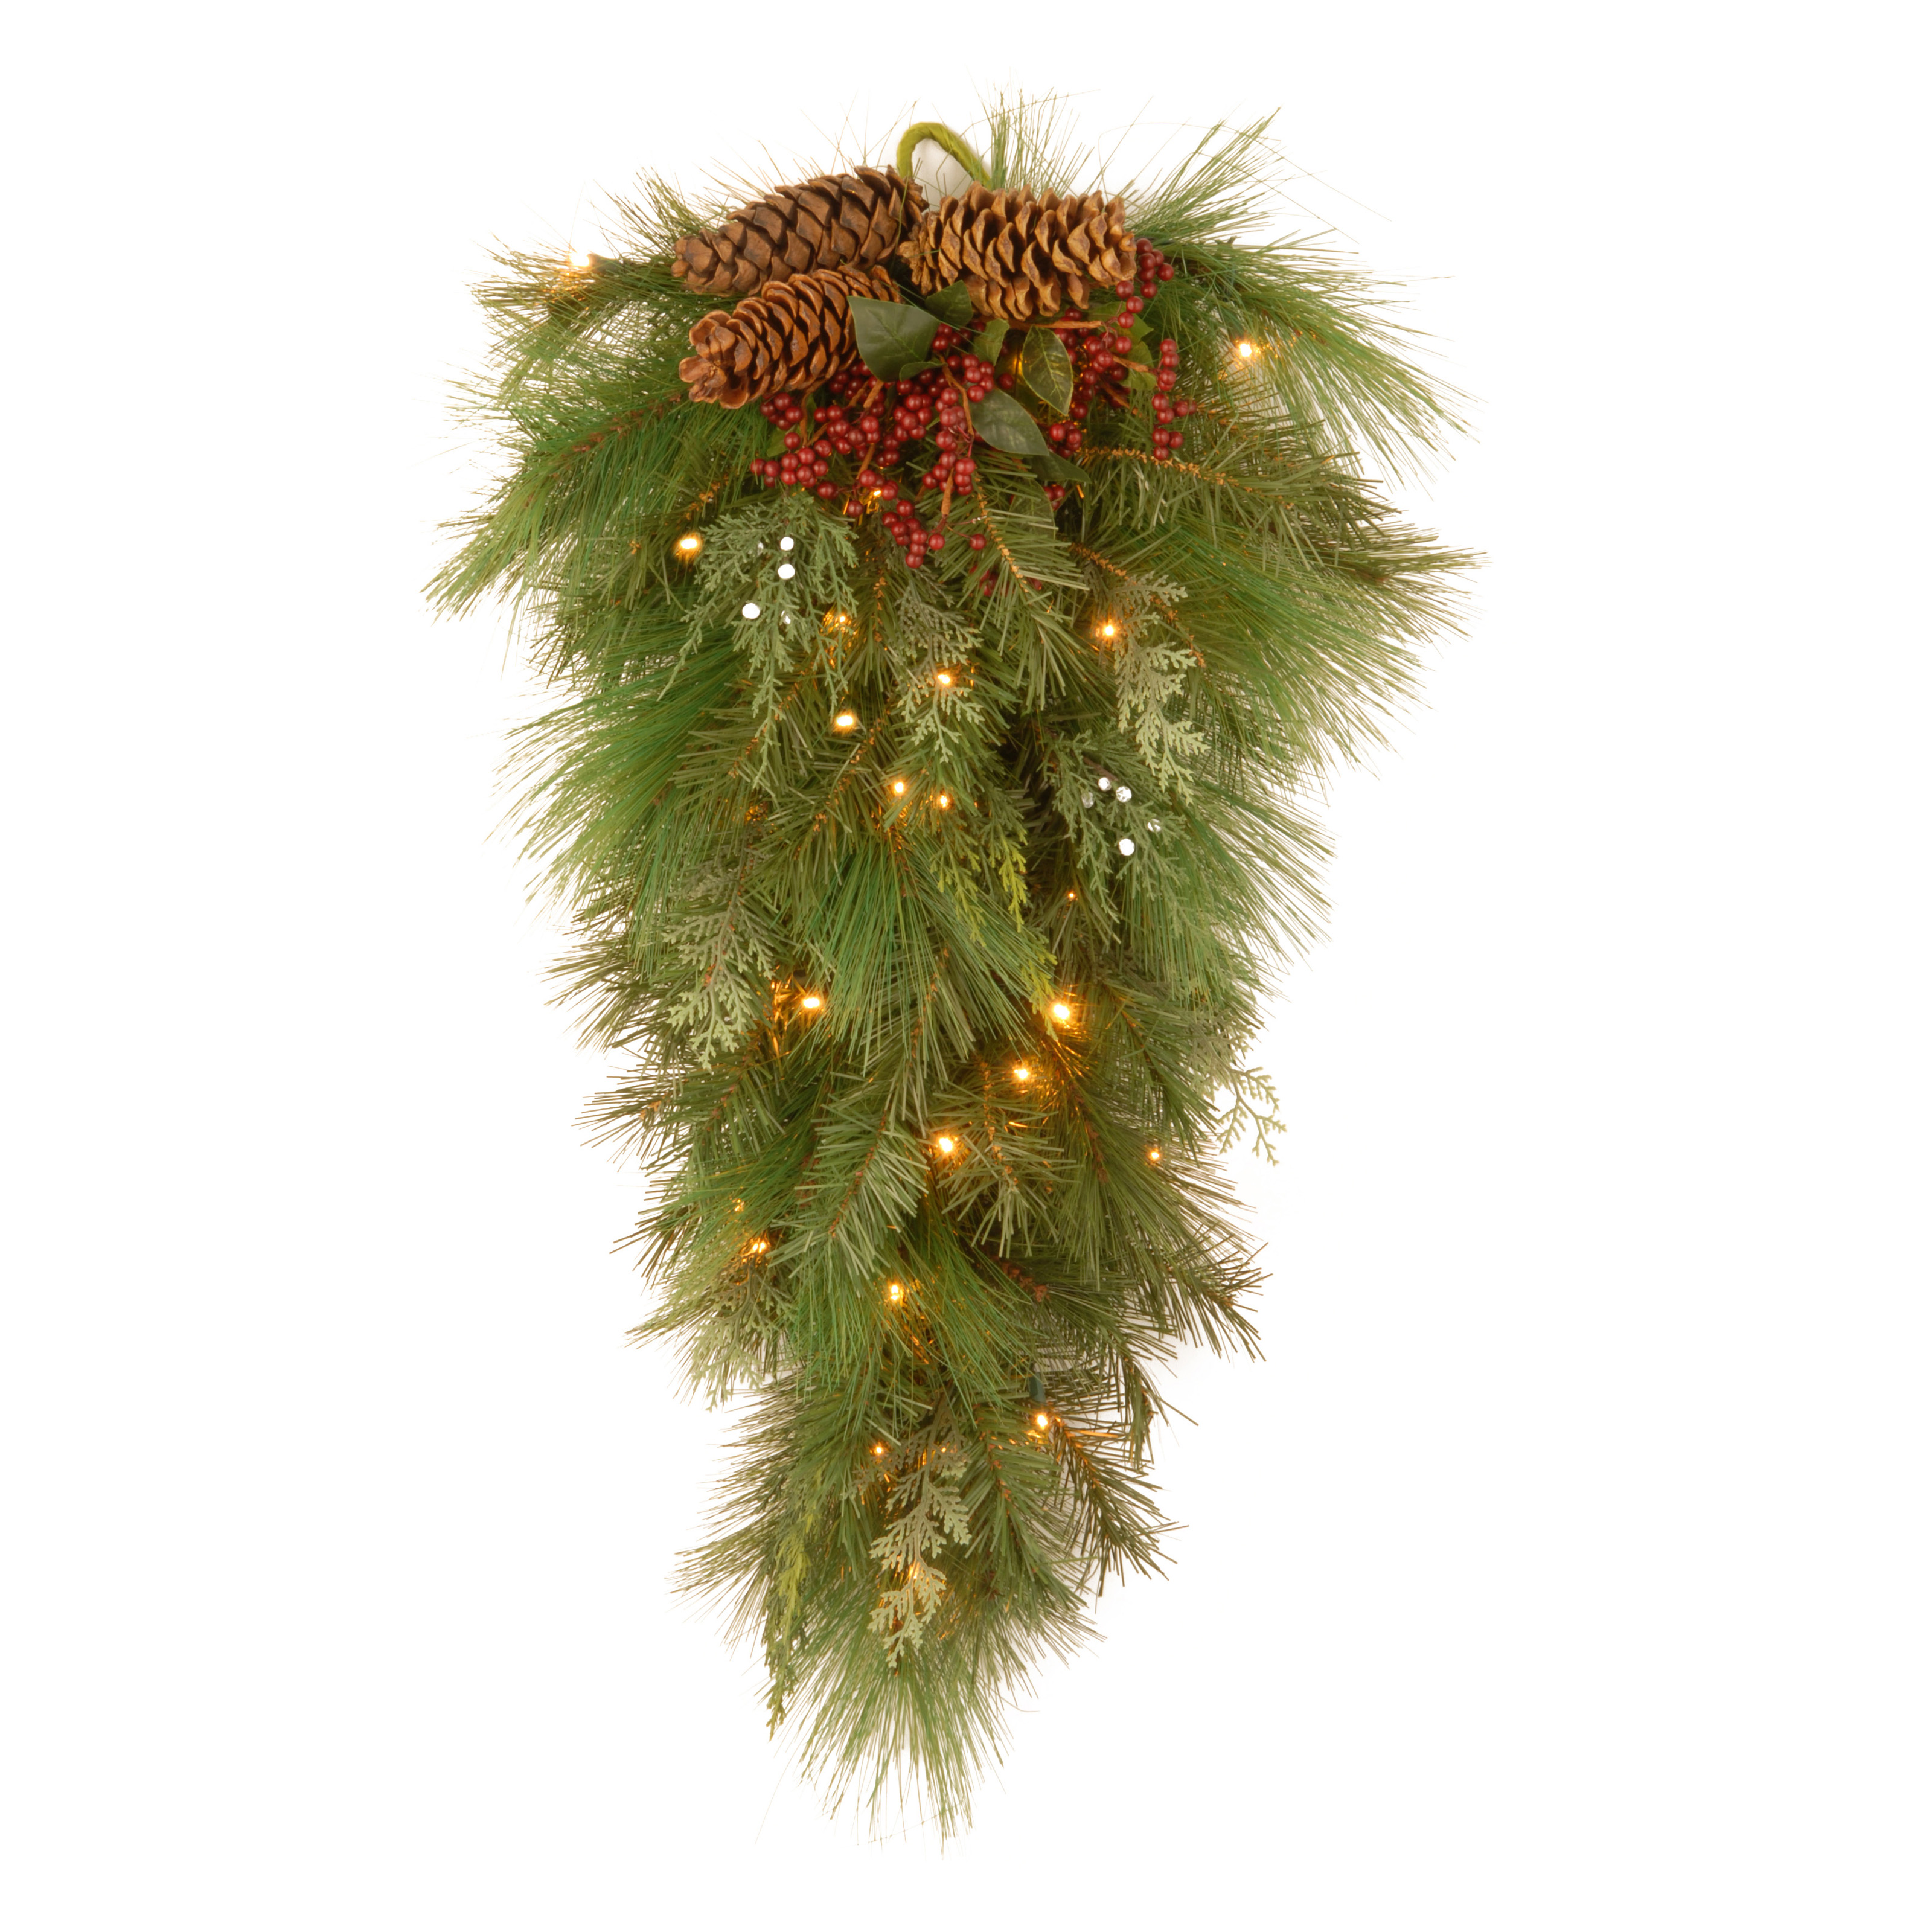 2.3 ft. White Pine Wall Pre Lit LED Teardrop Garland   Battery Operated   Christmas Swags